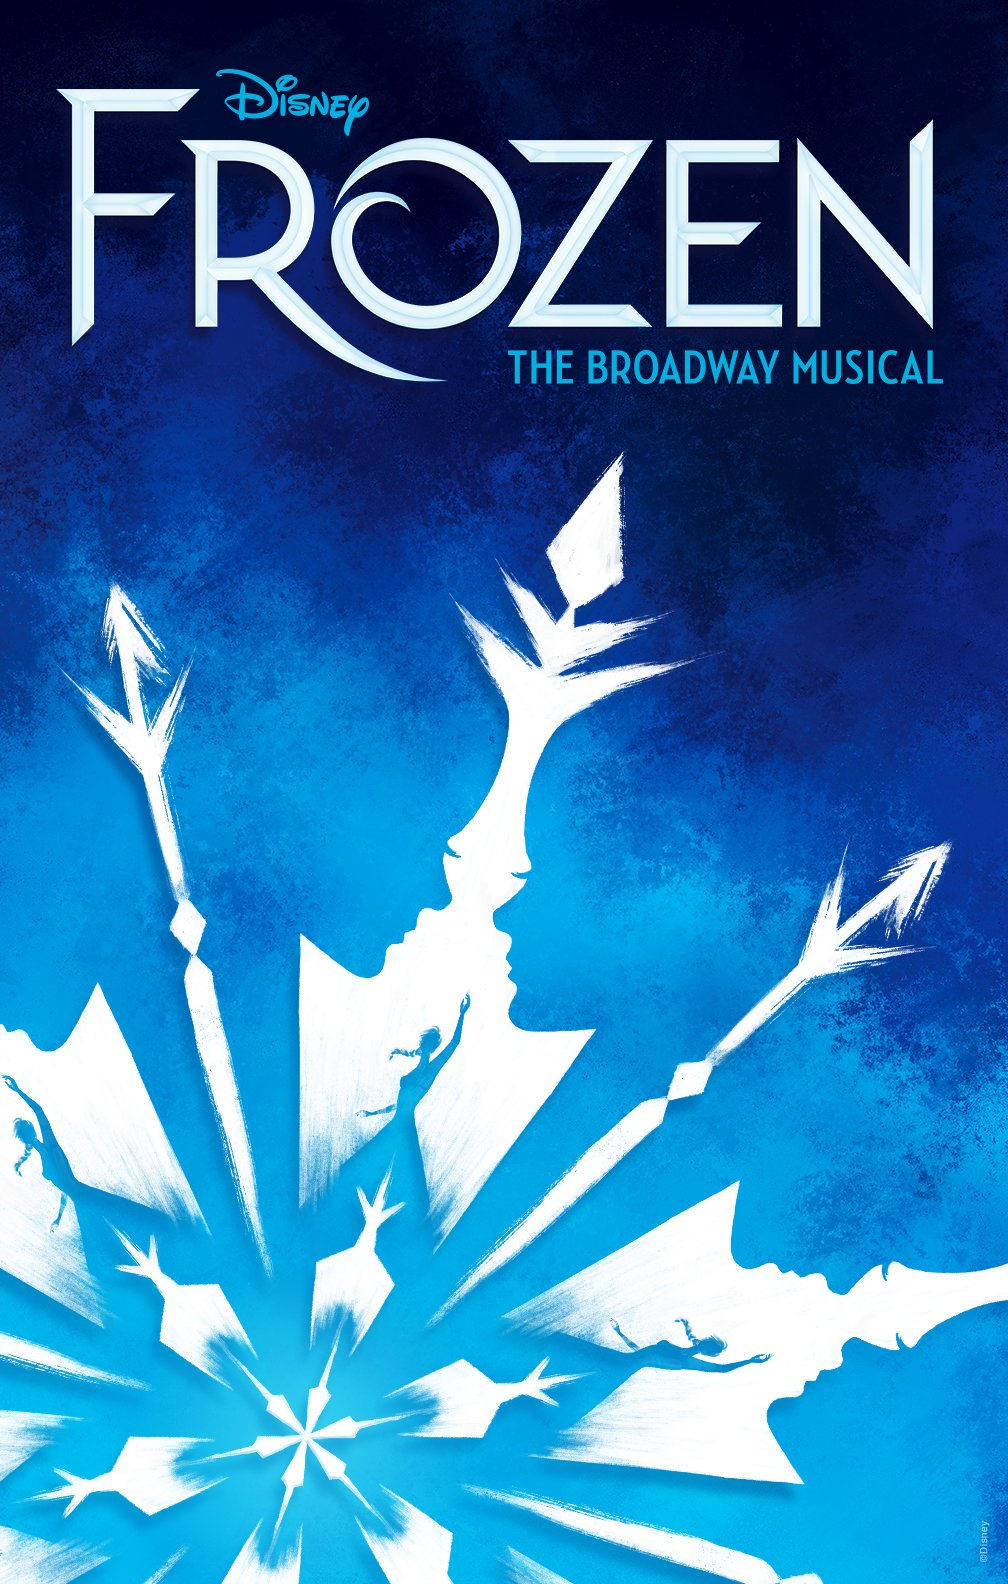 Disney's Frozen Breaks House Record in Opening Week on Broadway